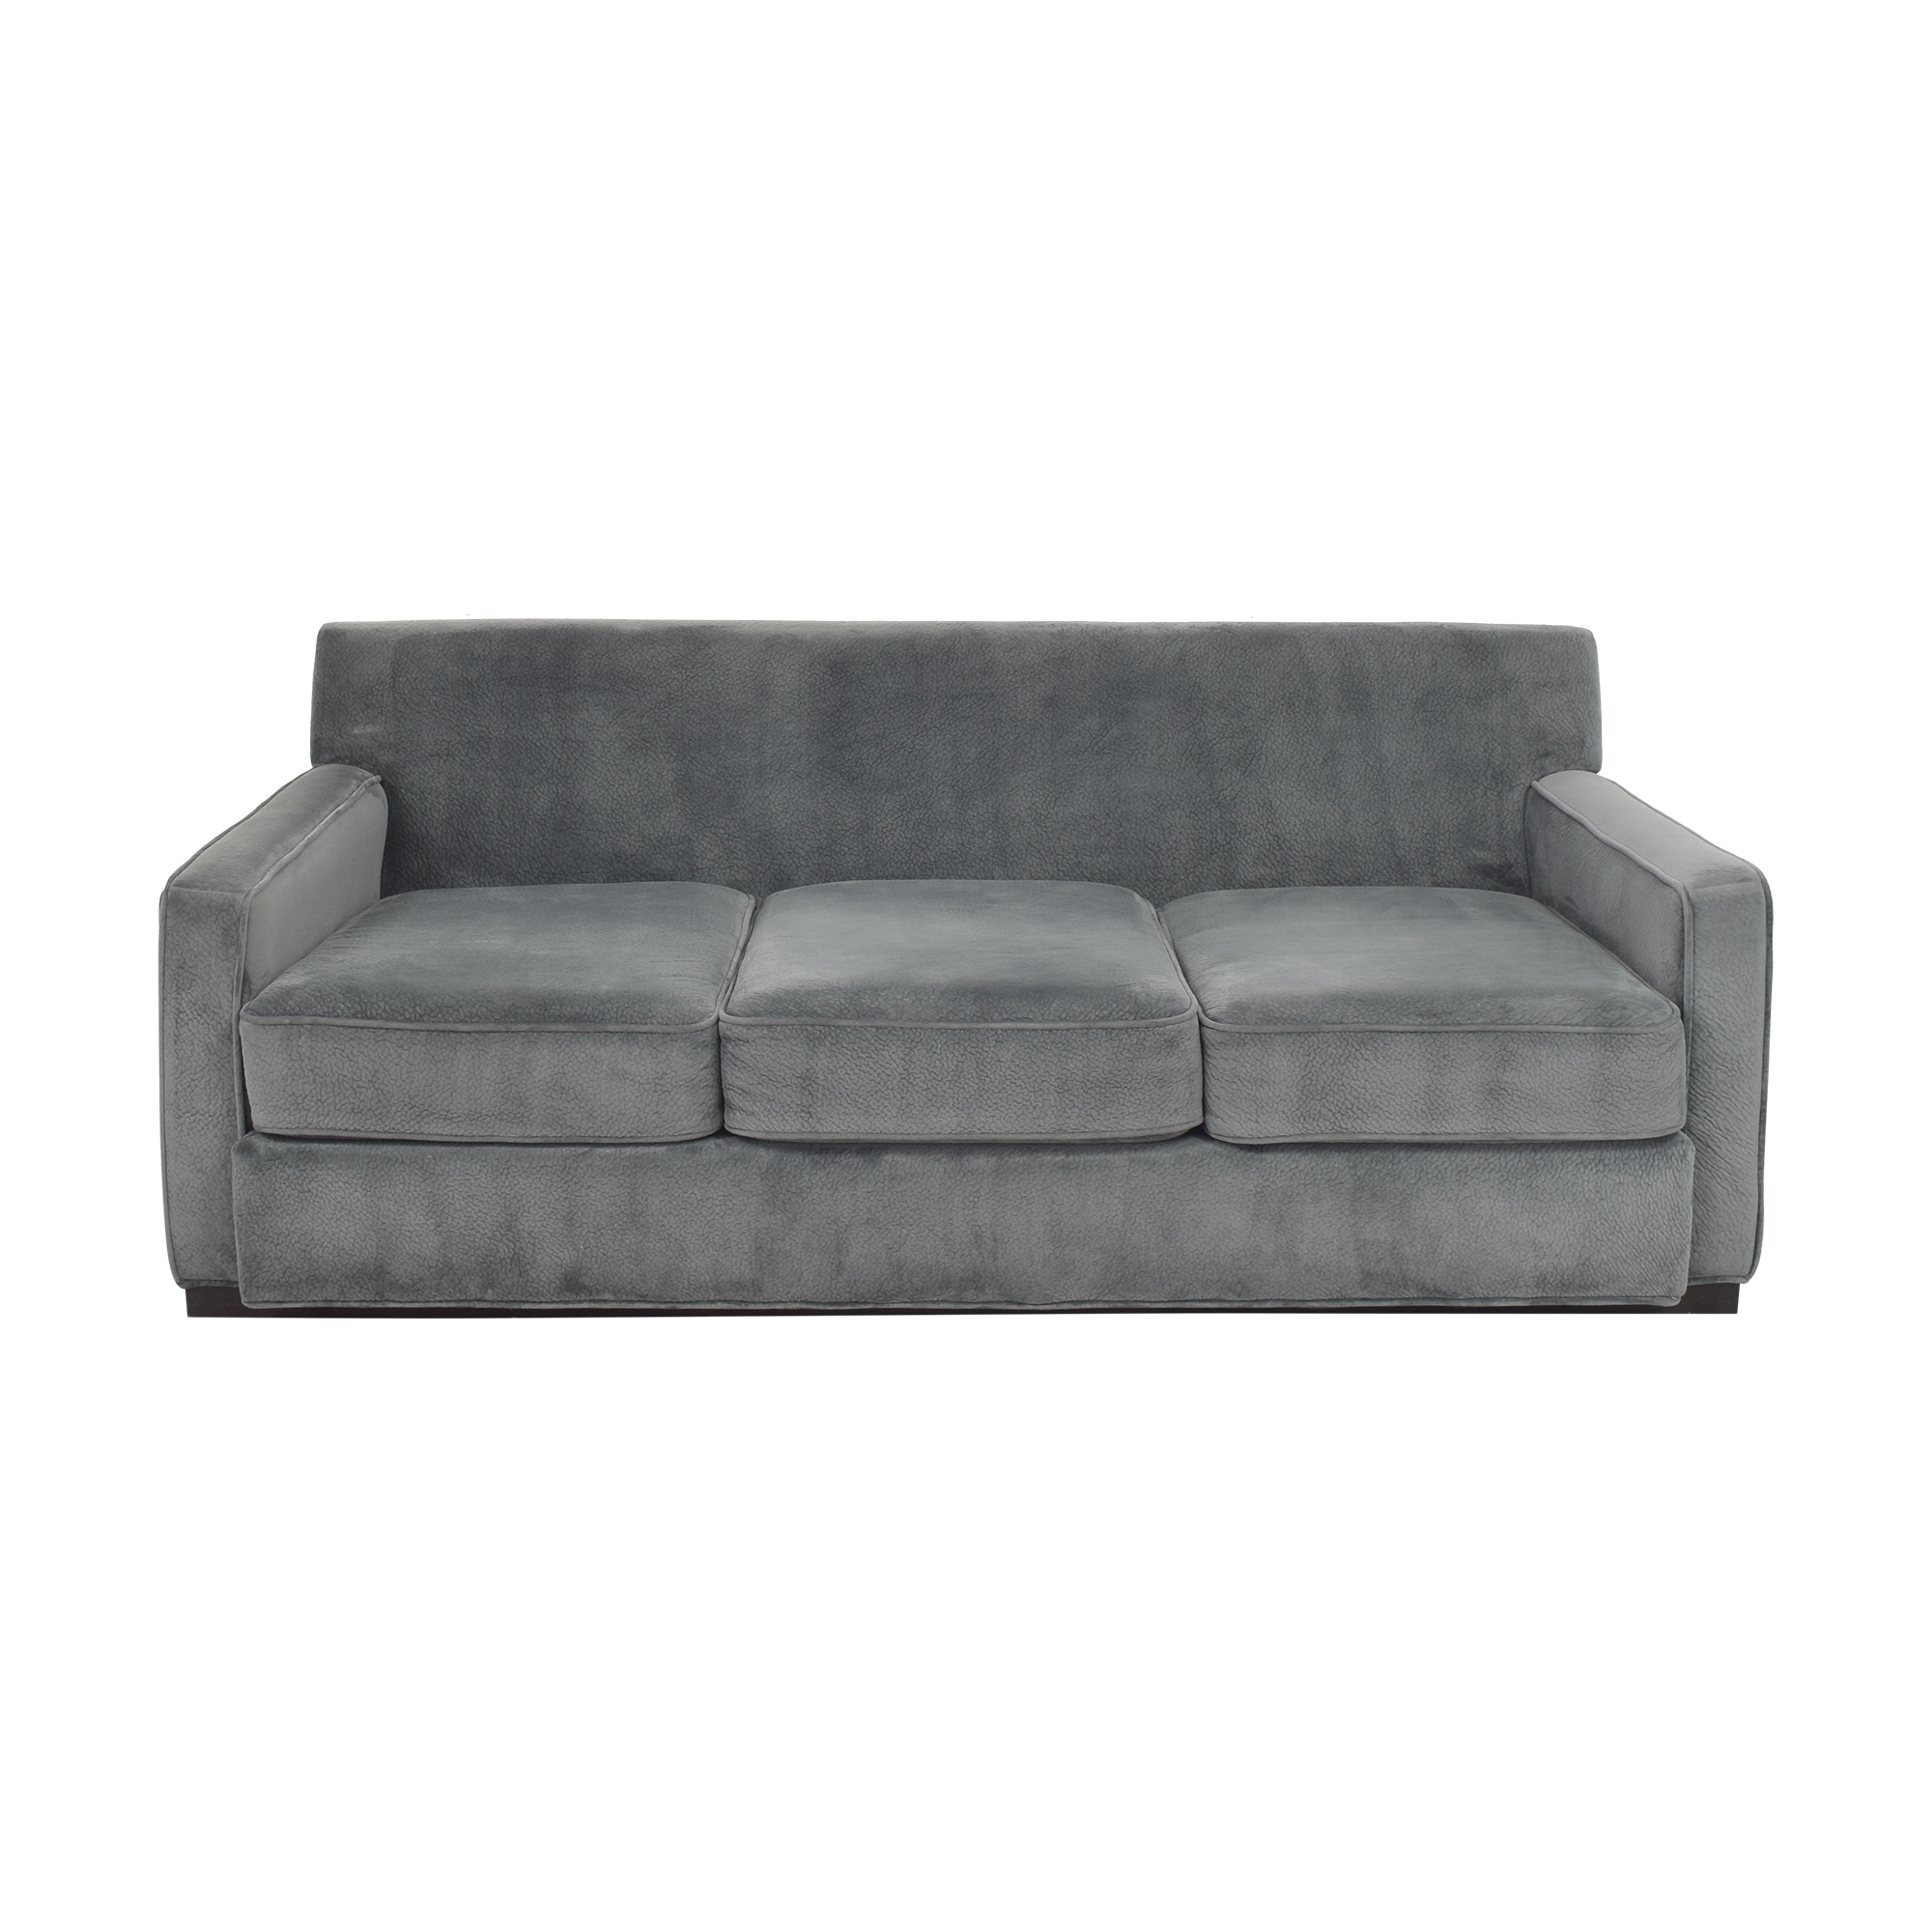 shop The Sofa Company Three Cushion Sofa The Sofa Company Classic Sofas